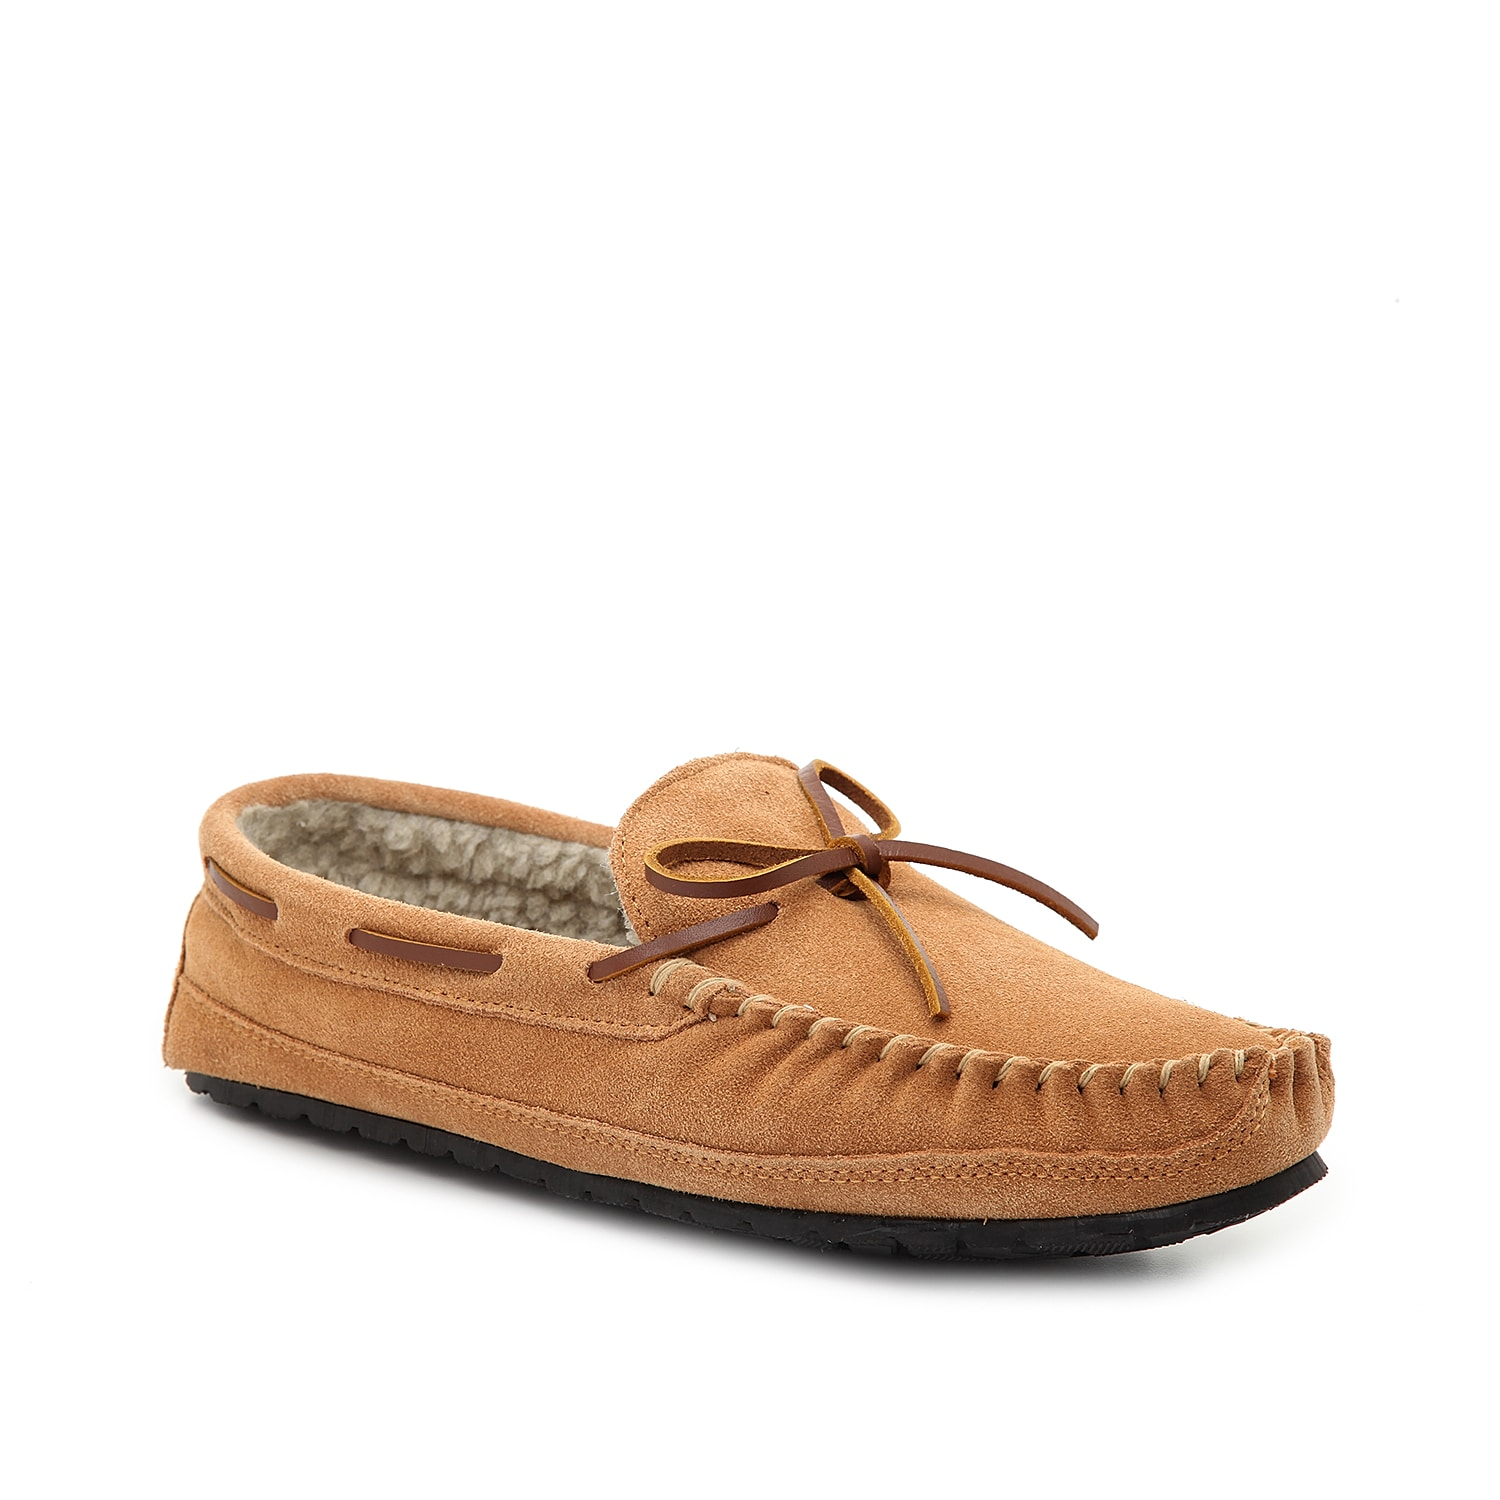 The Casey moccasin slippers from Minnetonka are so cozy you\\\'ll want to wear them everywhere you go. Featuring a rubber hardsole, these suede slippers can be worn inside and outside!